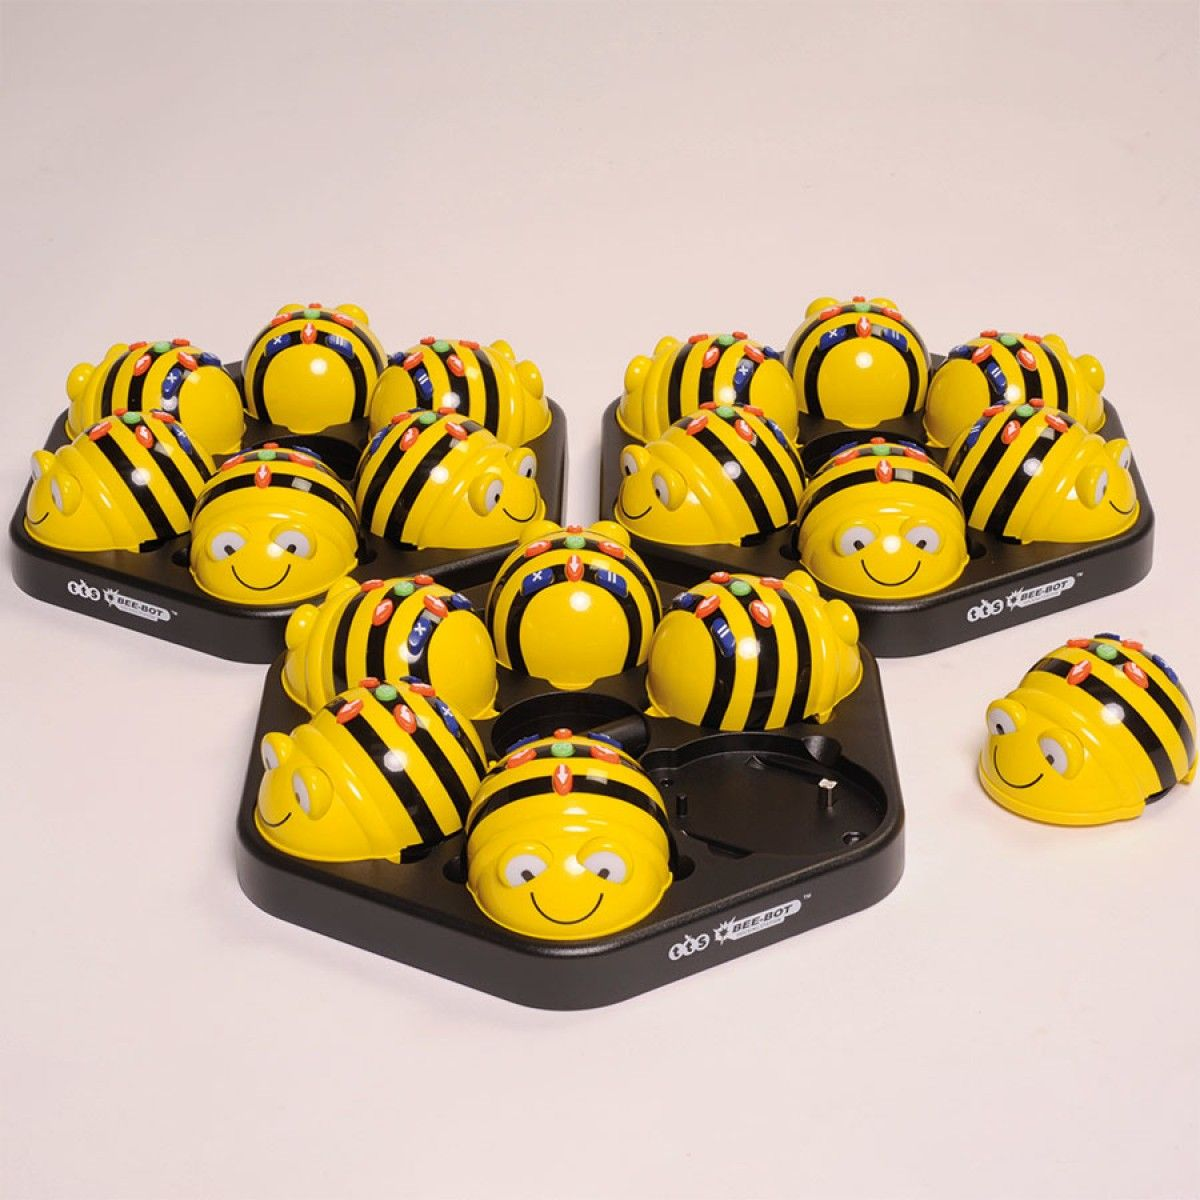 Rechargeable BeeBot Beebot, Basic programming